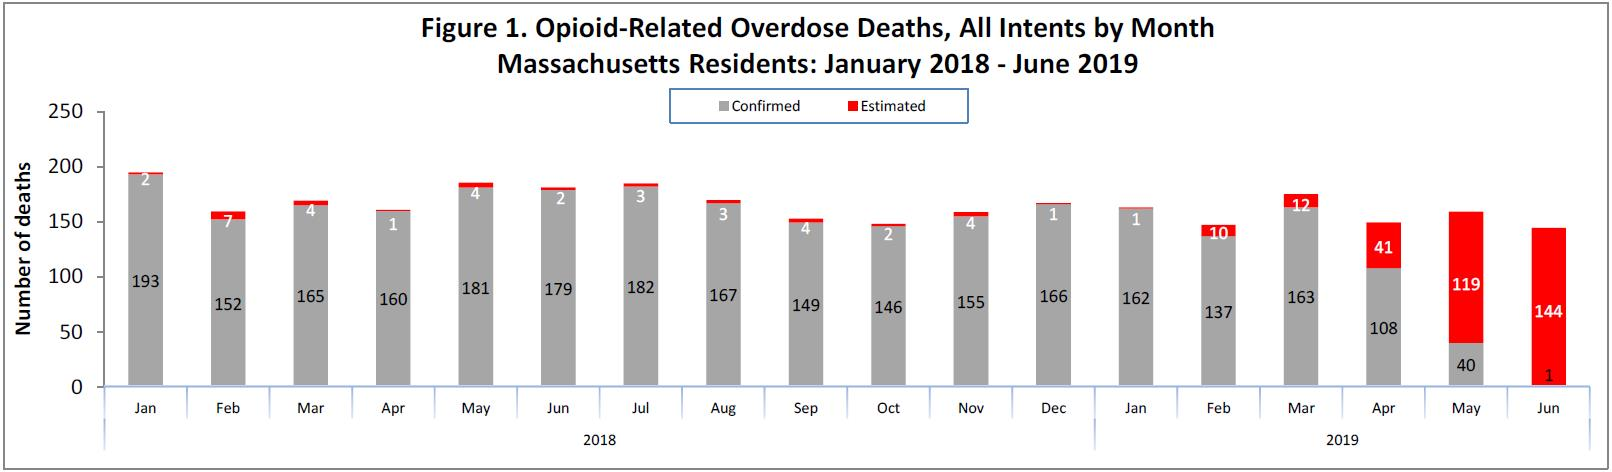 MA Opioid Death 1-2018 to 6-2019